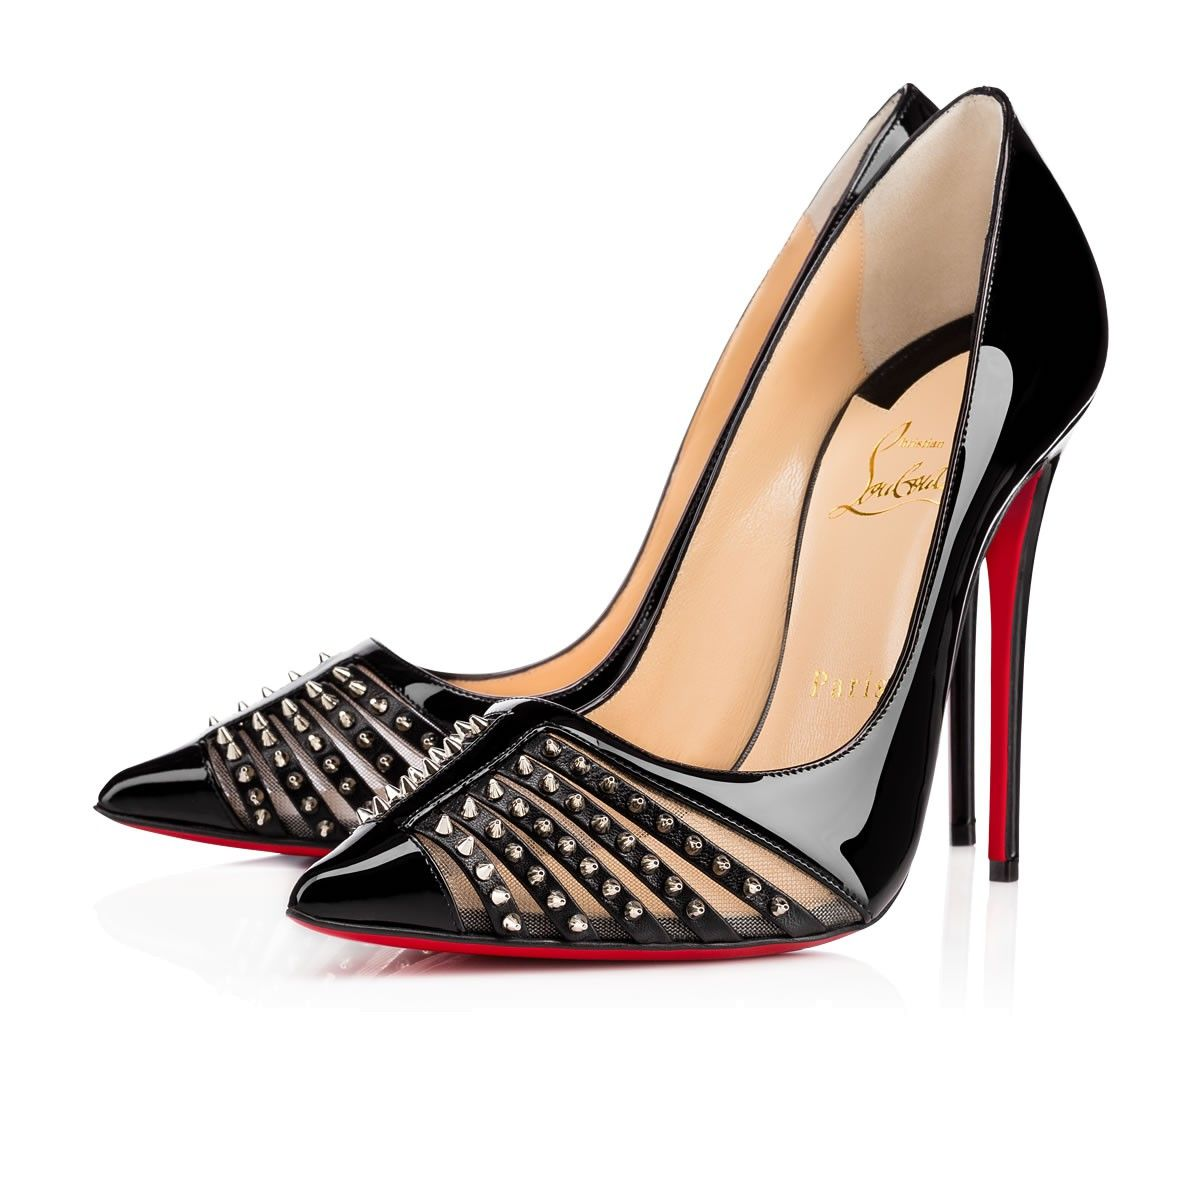 CHRISTIAN LOUBOUTIN Tacones Mujer